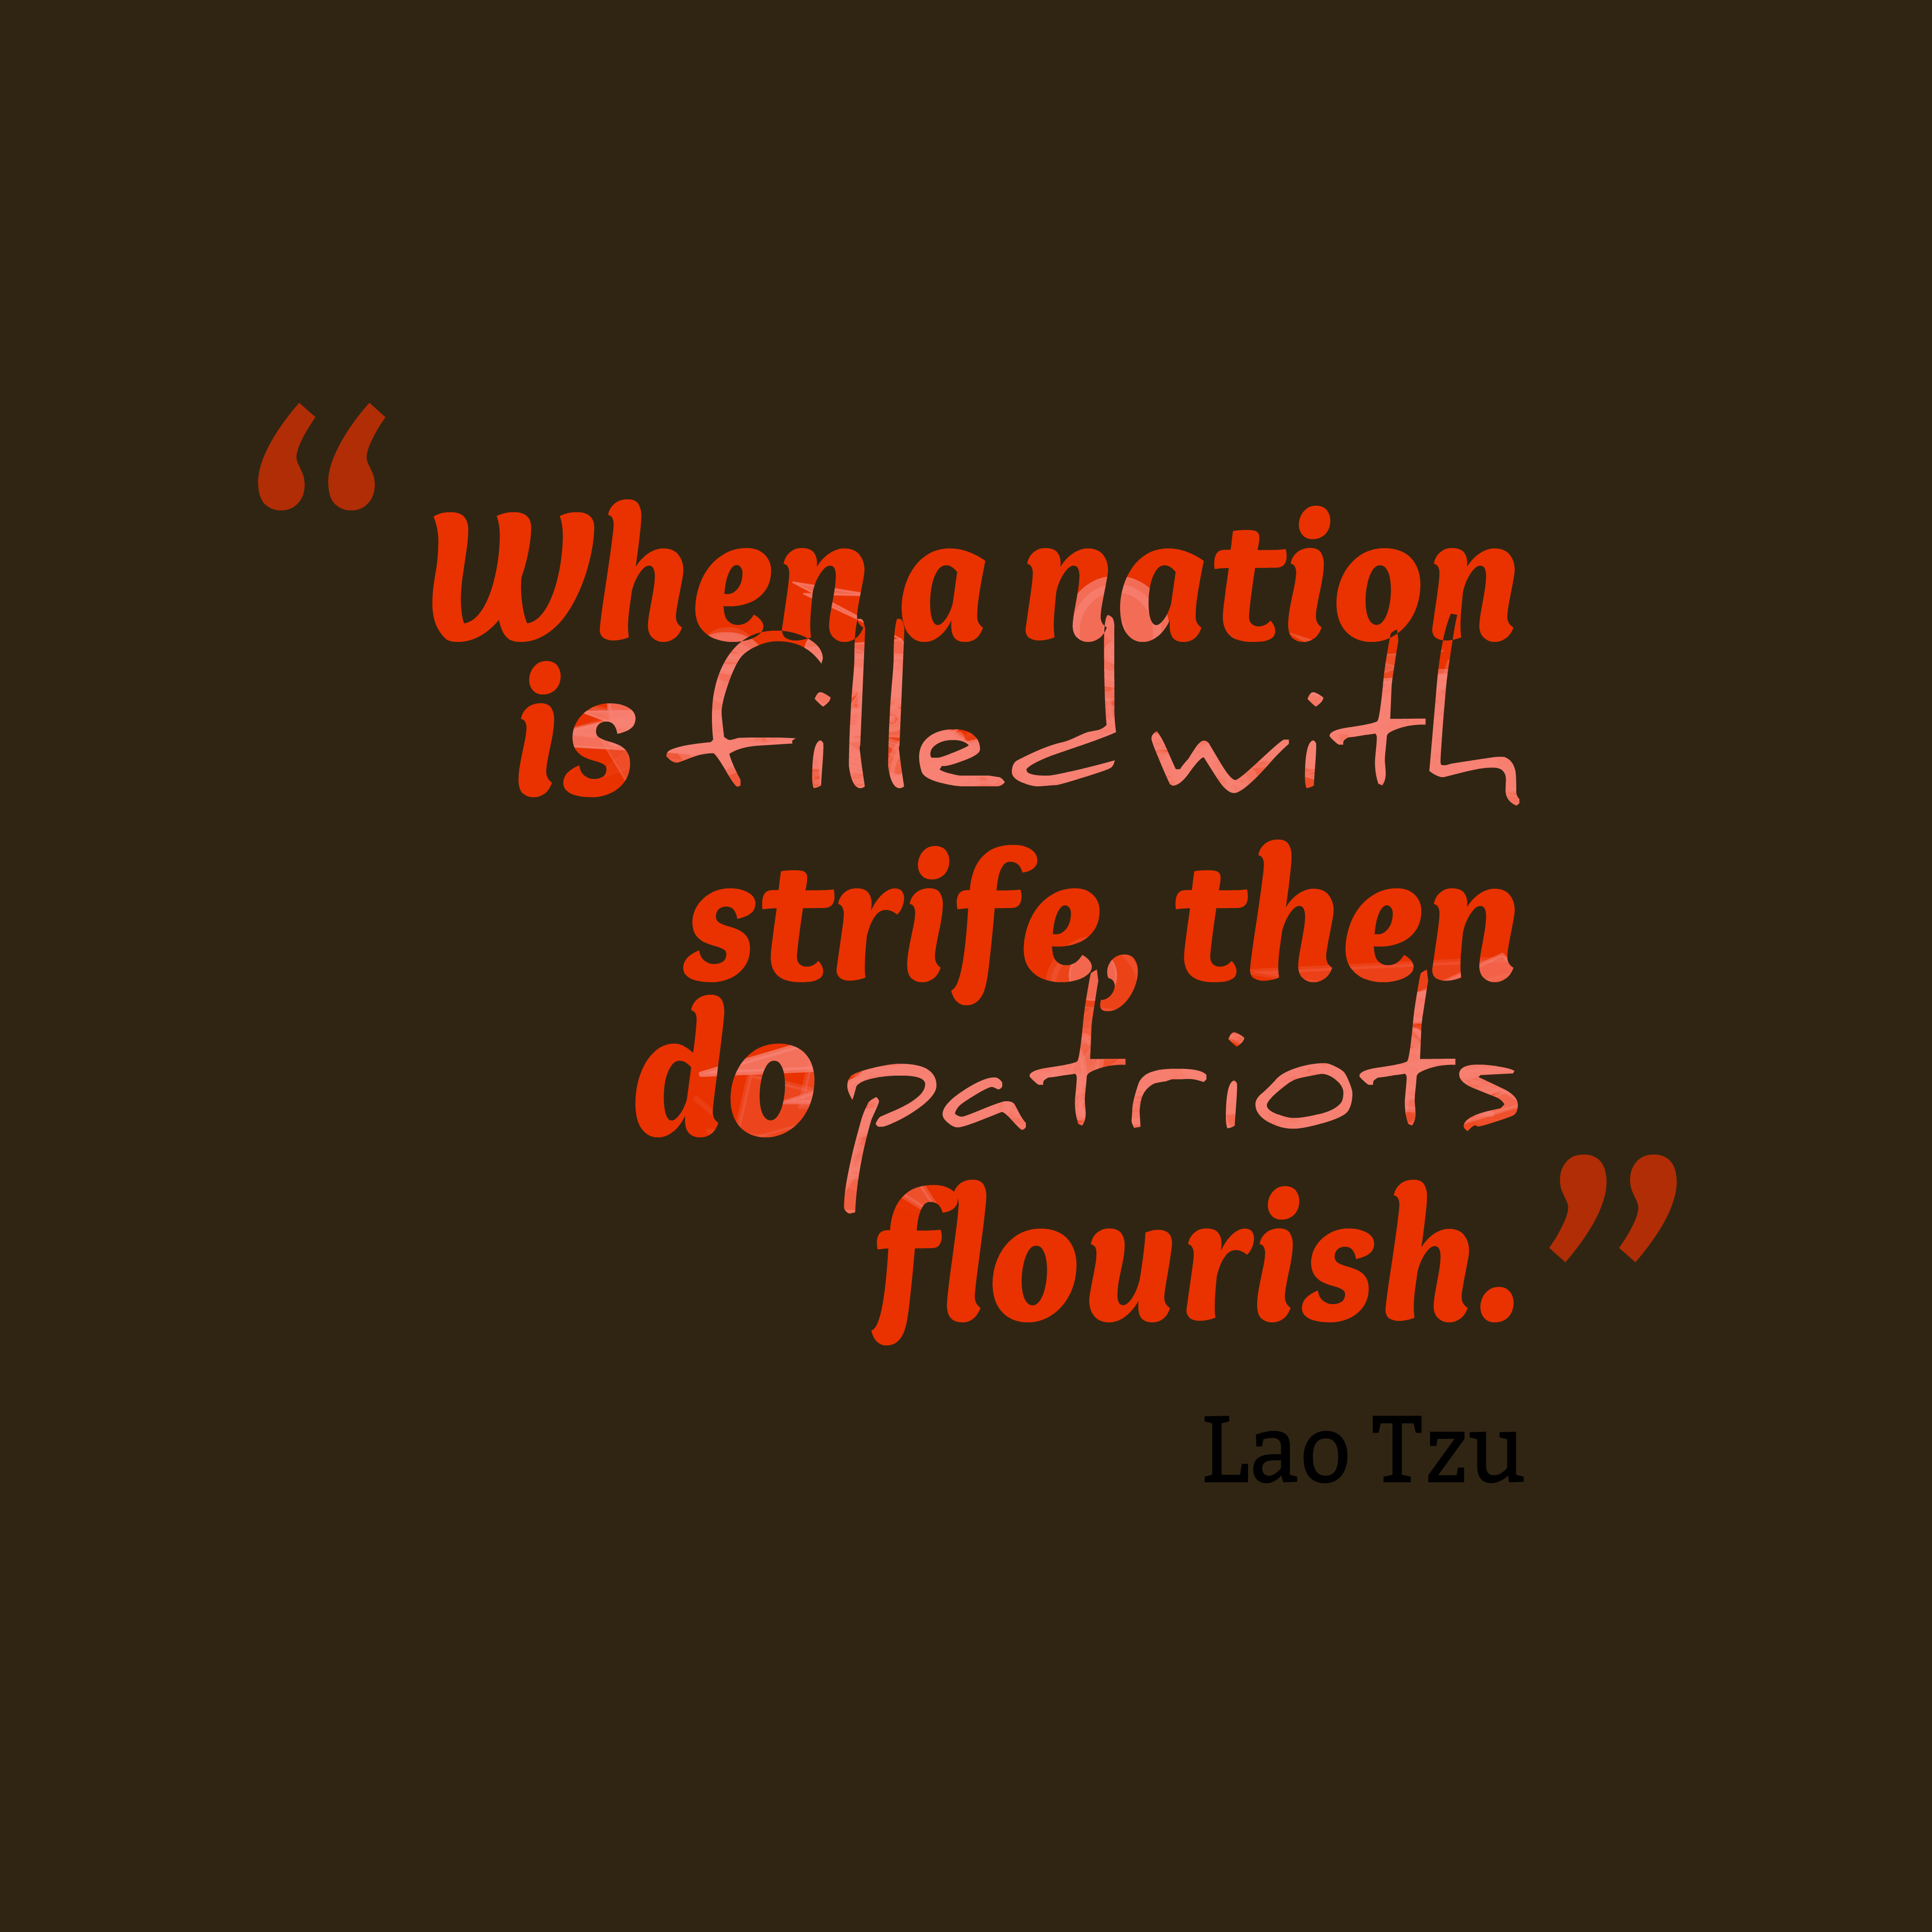 Quotes image of When a nation is filled with strife, then do patriots flourish.